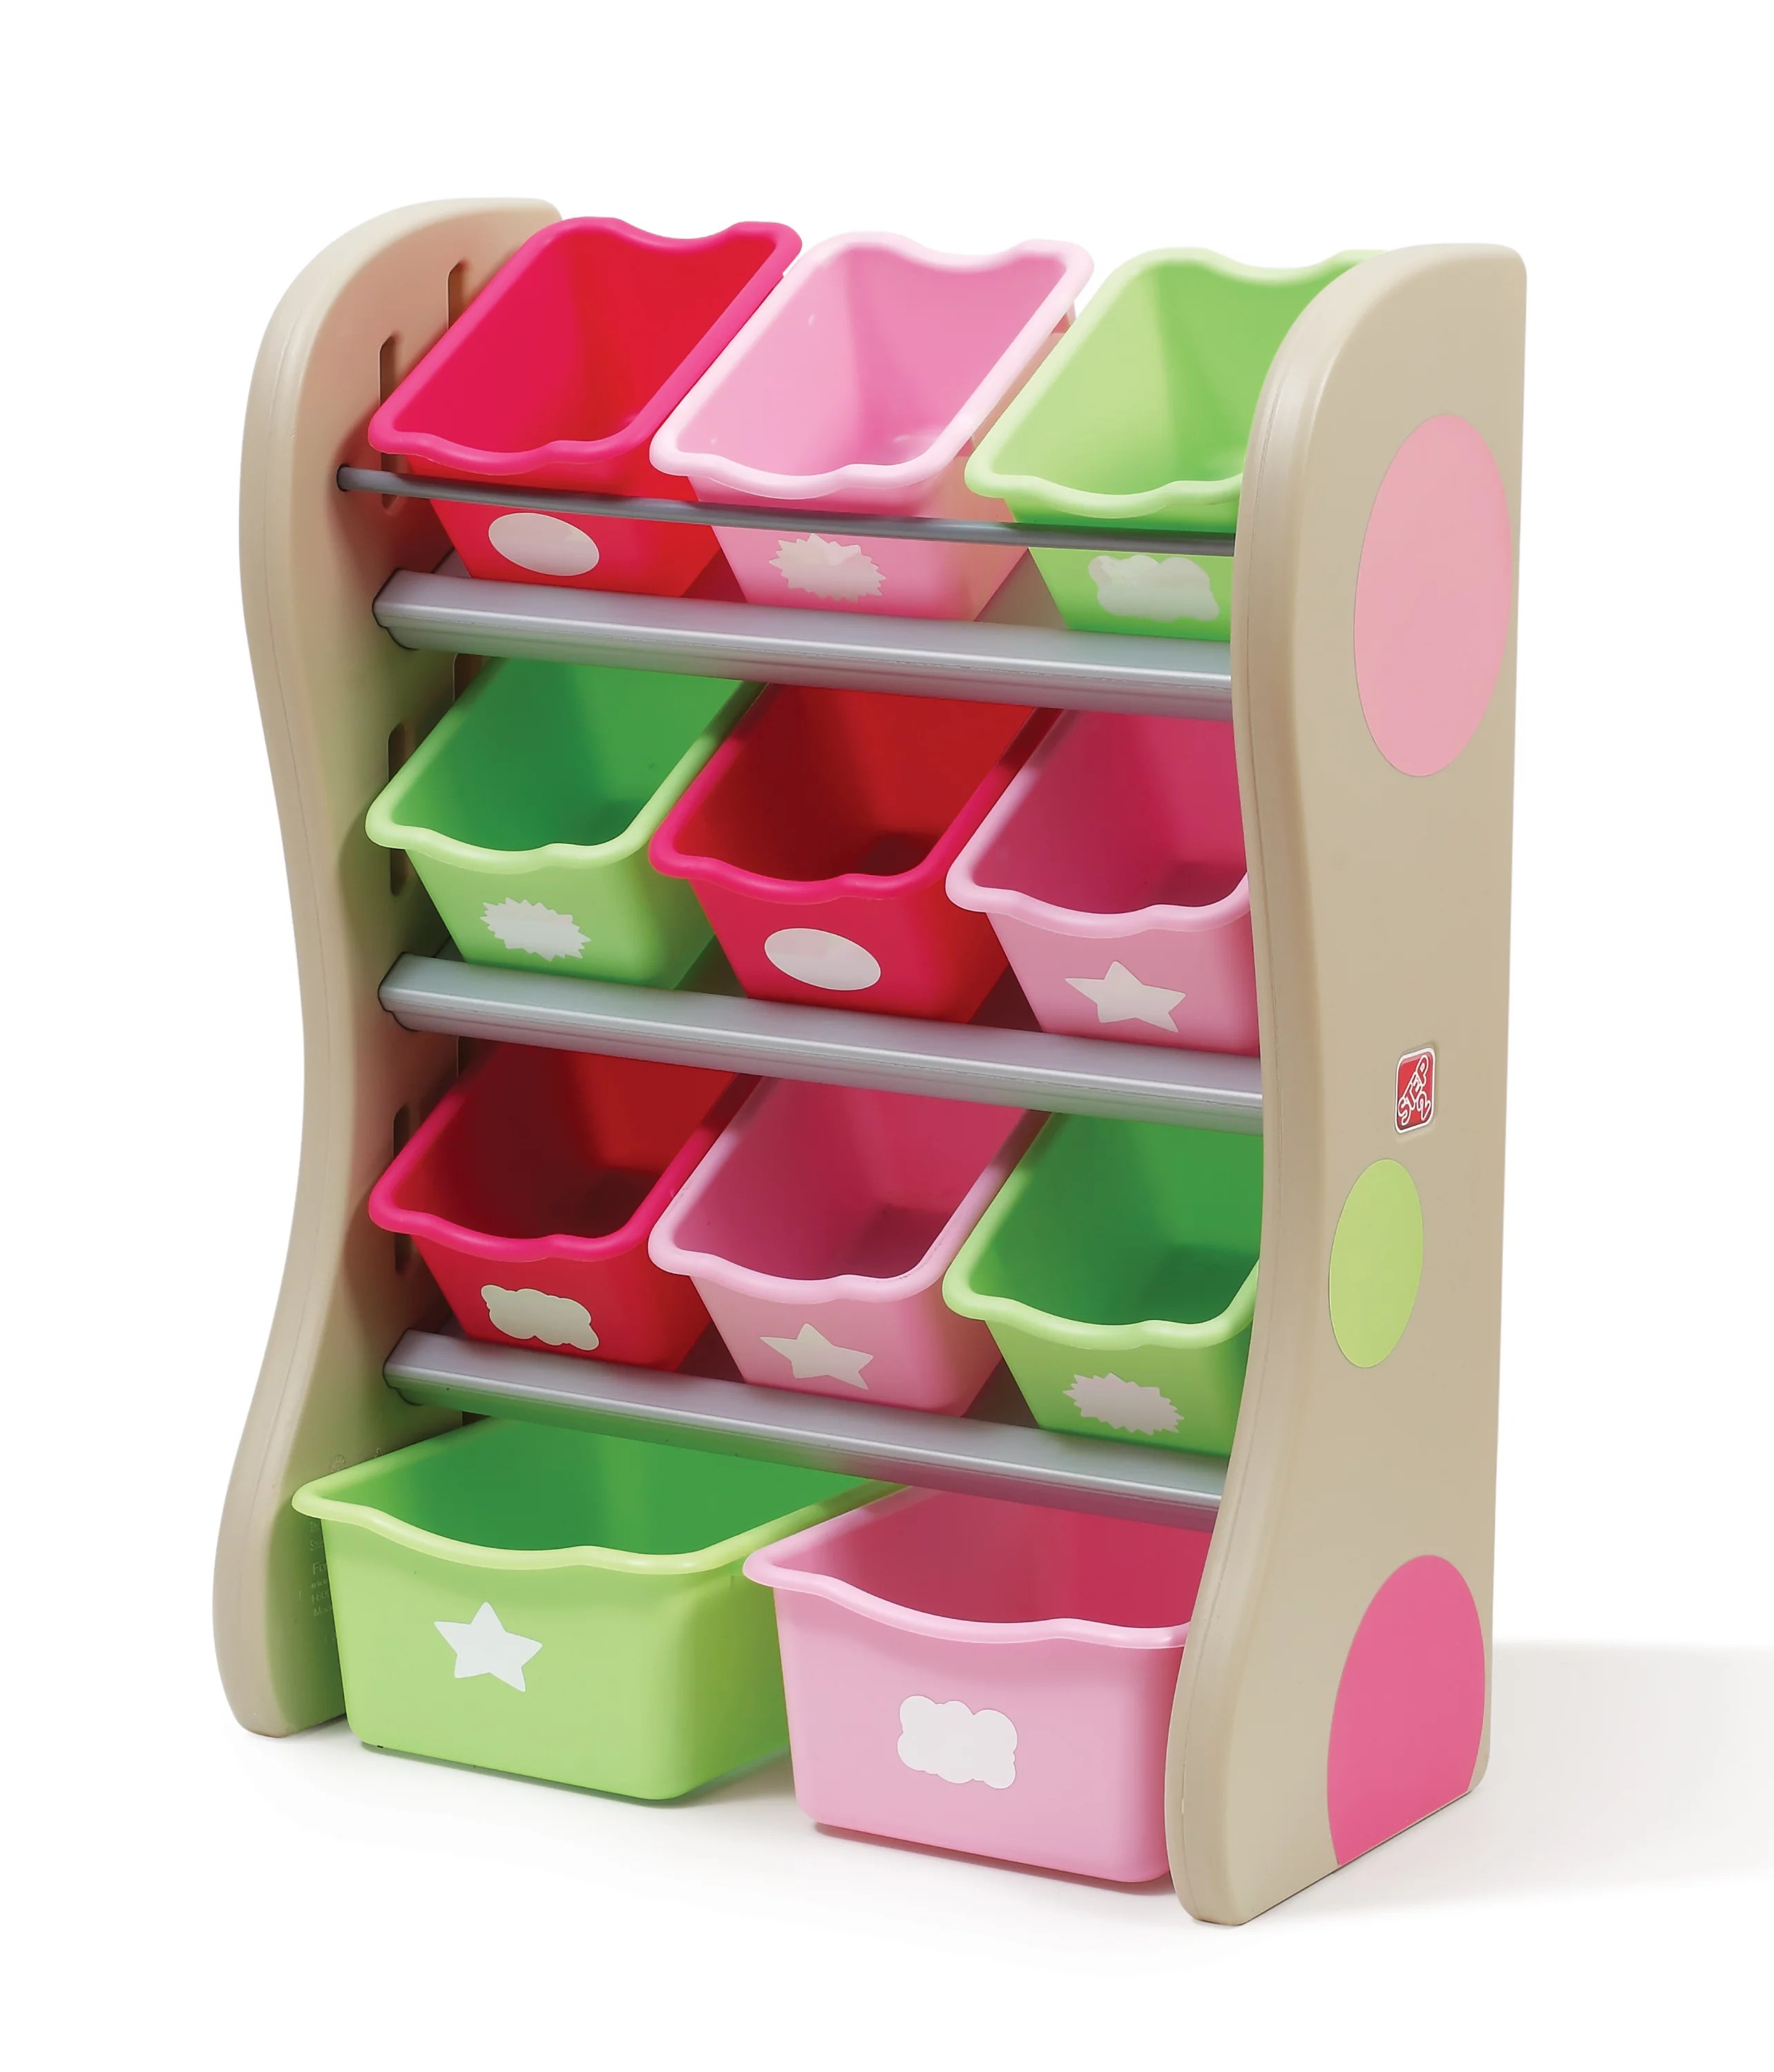 Pink Bins Step2 Storage Bin Organizer Pink Red And Green Bins Walmart